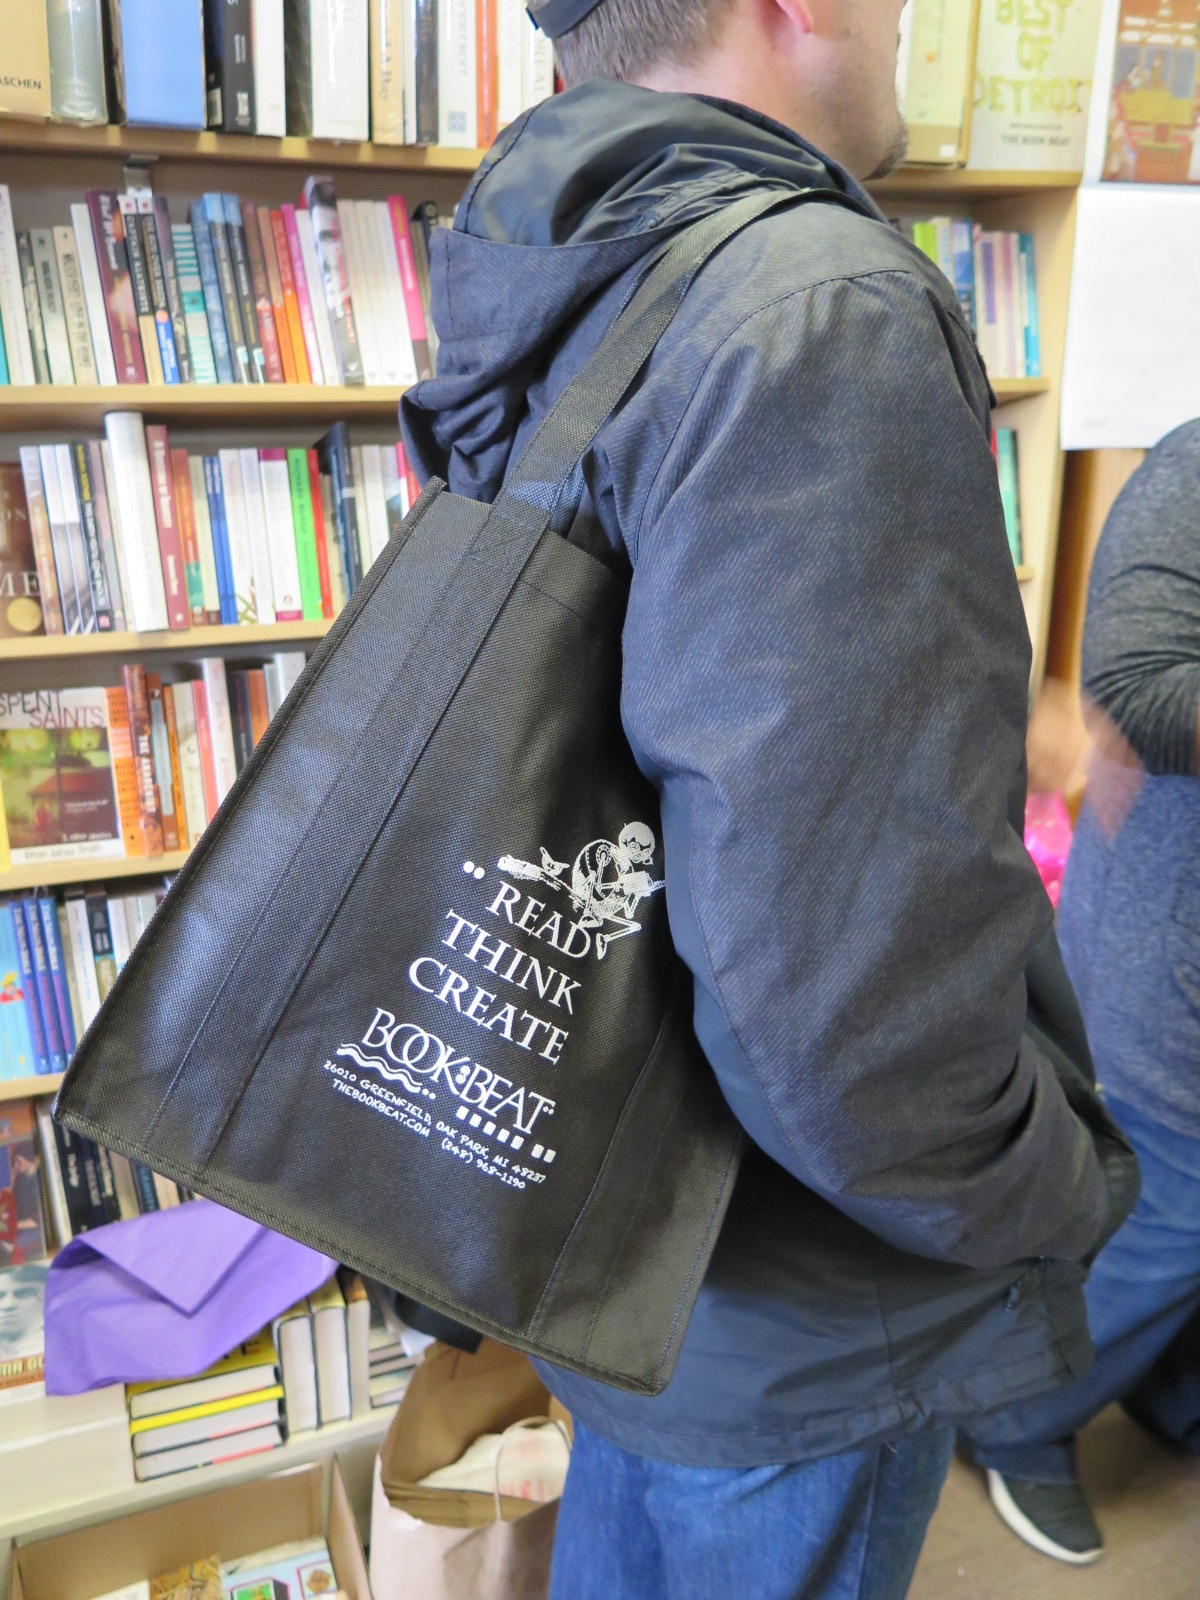 Book Beat swag-bag